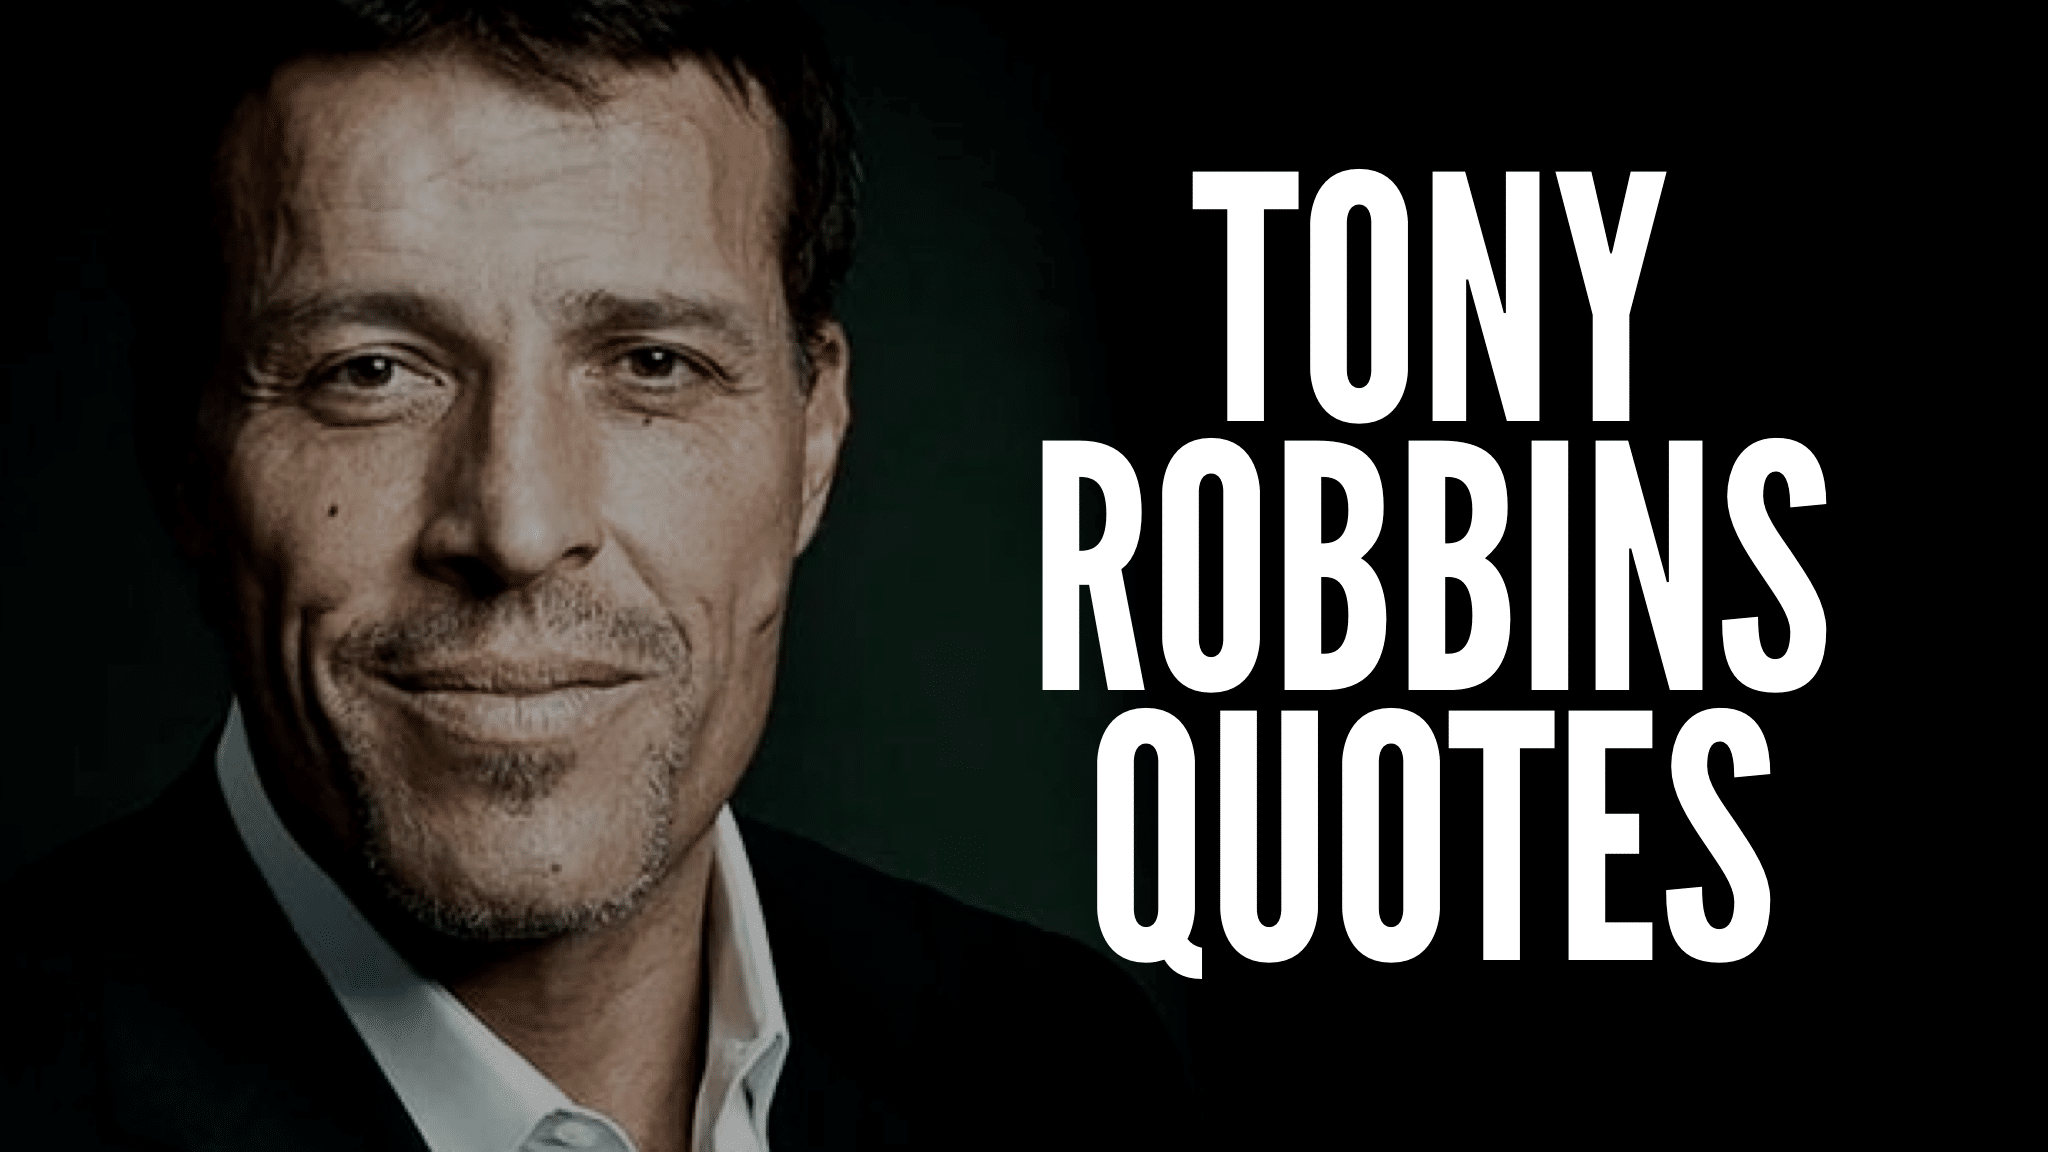 20 Tony Robbins Quotes To Live By!